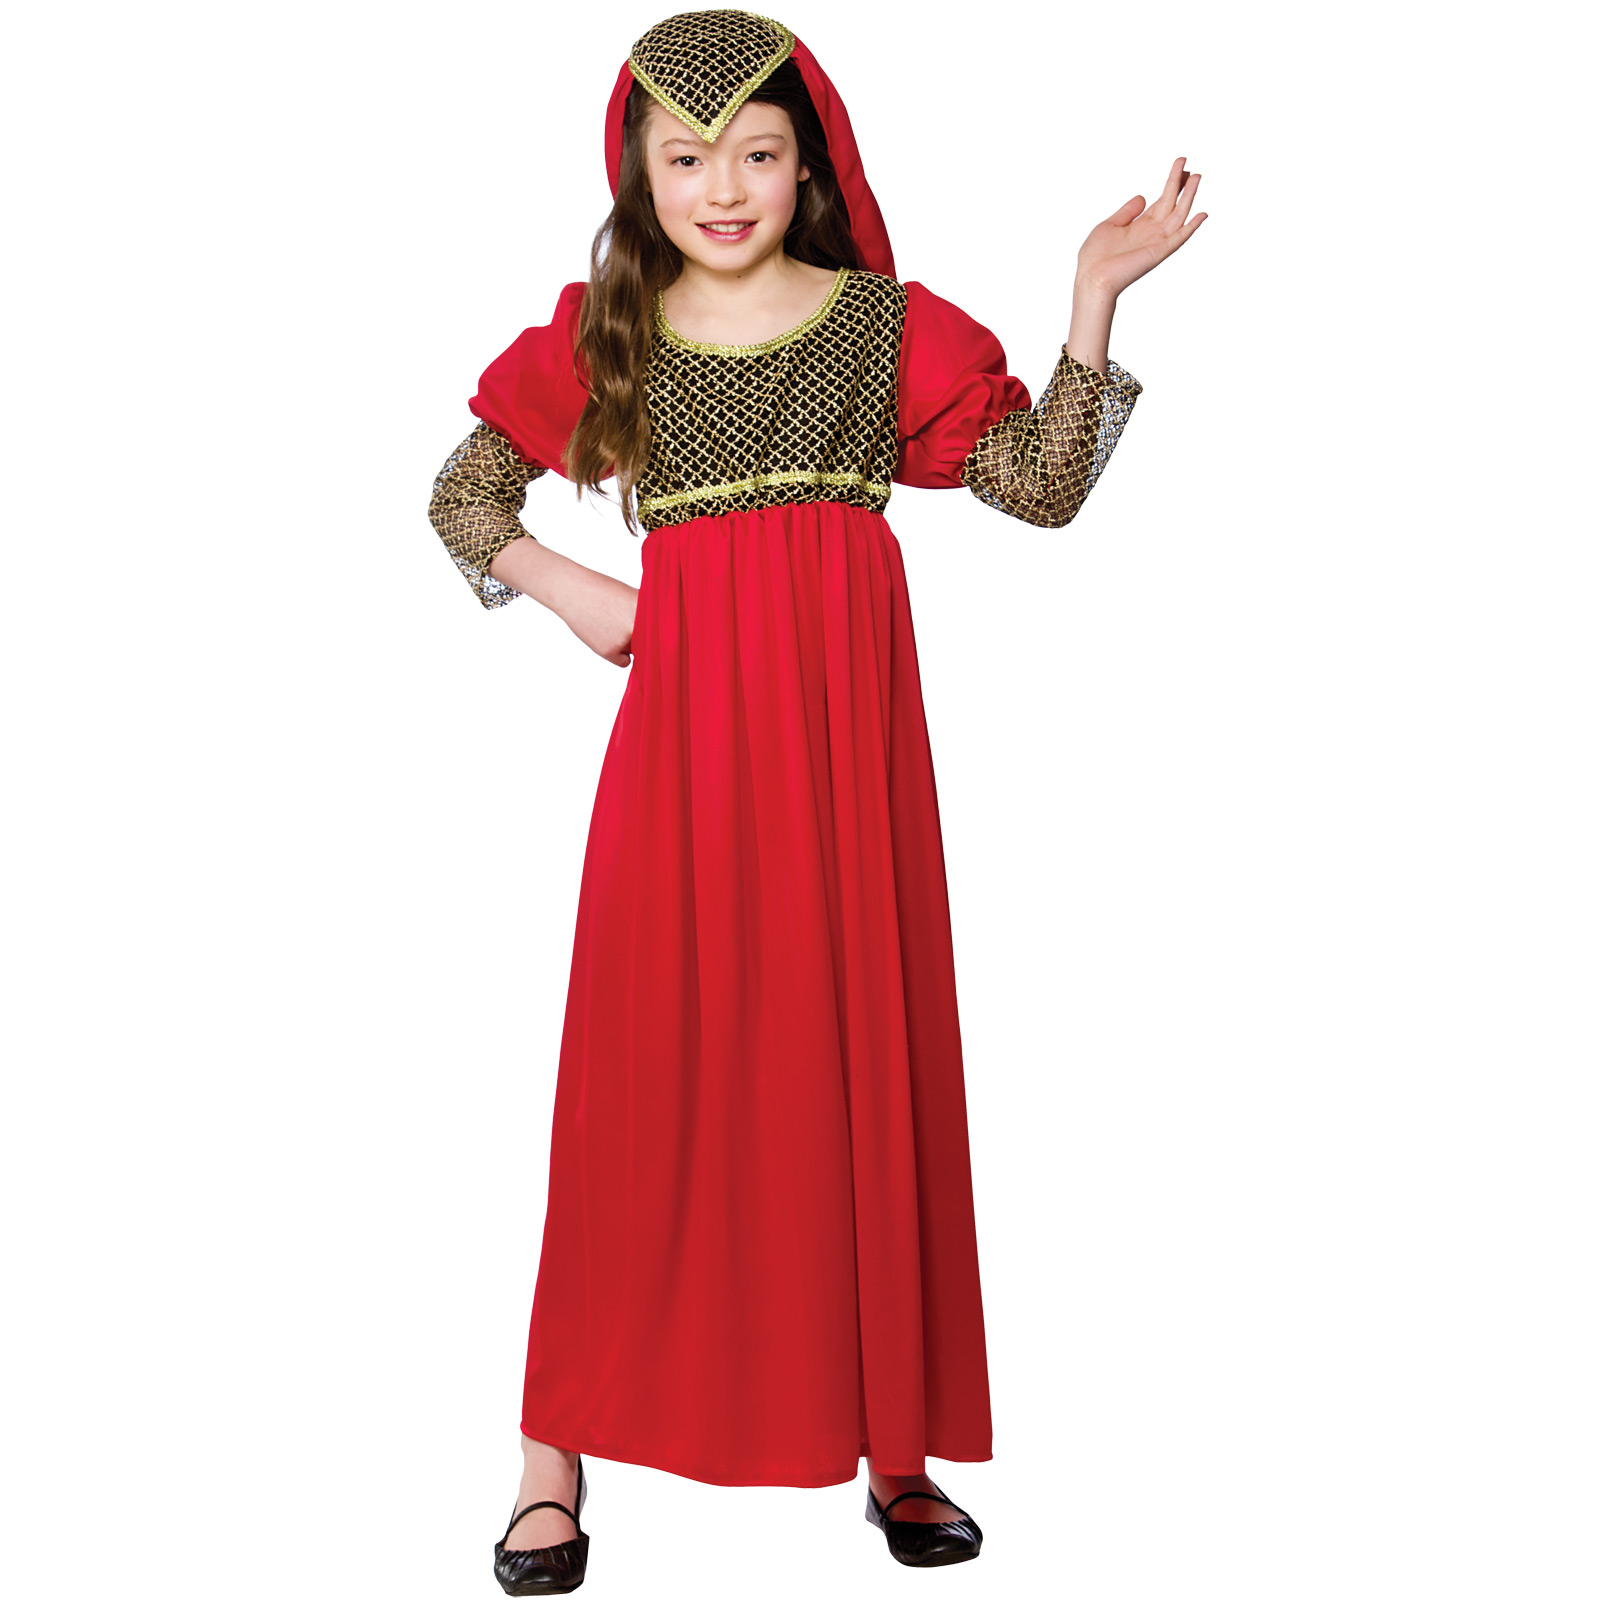 Child-Girls-Princess-Juliet-Red-Costume-Fancy-Dress-Up-Role-Play-Party-Halloween